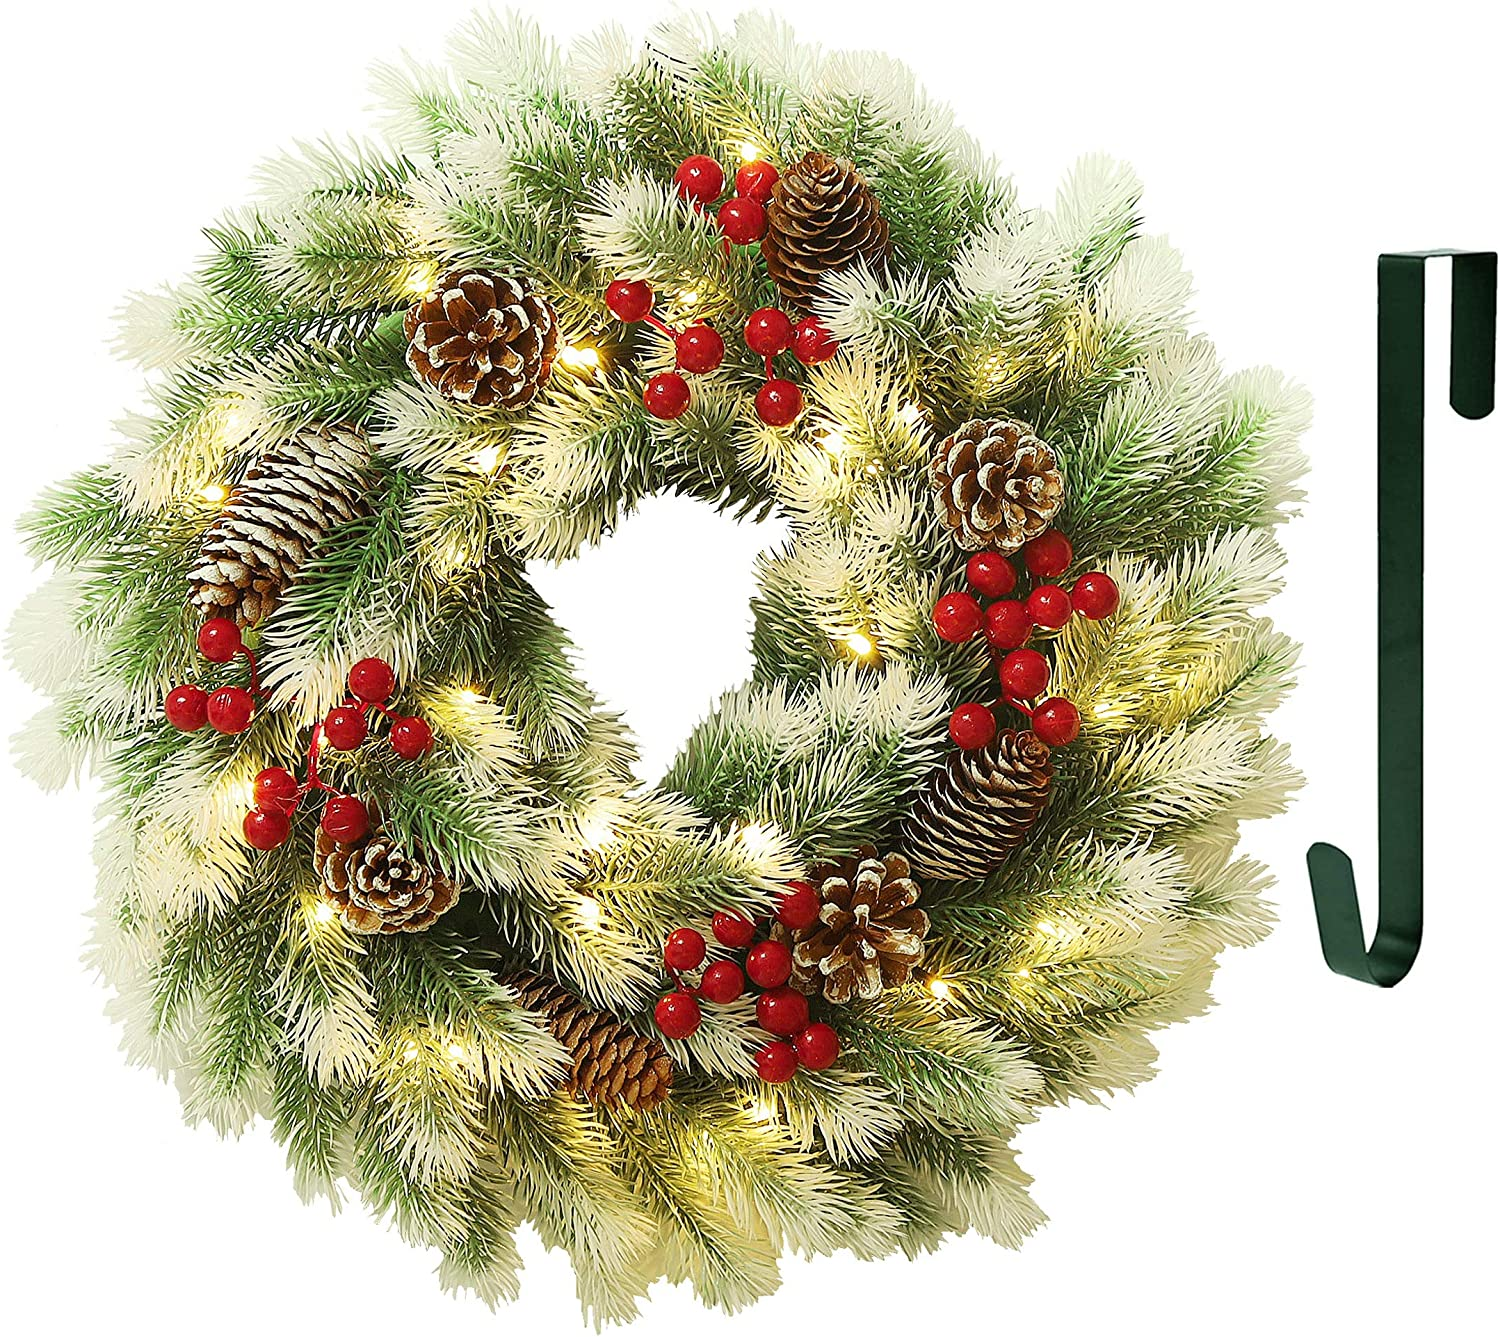 Juegoal 16 Inch Pre-Lit Christmas Wreath with Metal Hanger, Light Up Mountain Fir Pine Needle Wreath with Warm White 40 LED Lights, Indoor/Outdoor, Front Door Spruce Lighted Wreath X-max Decorations